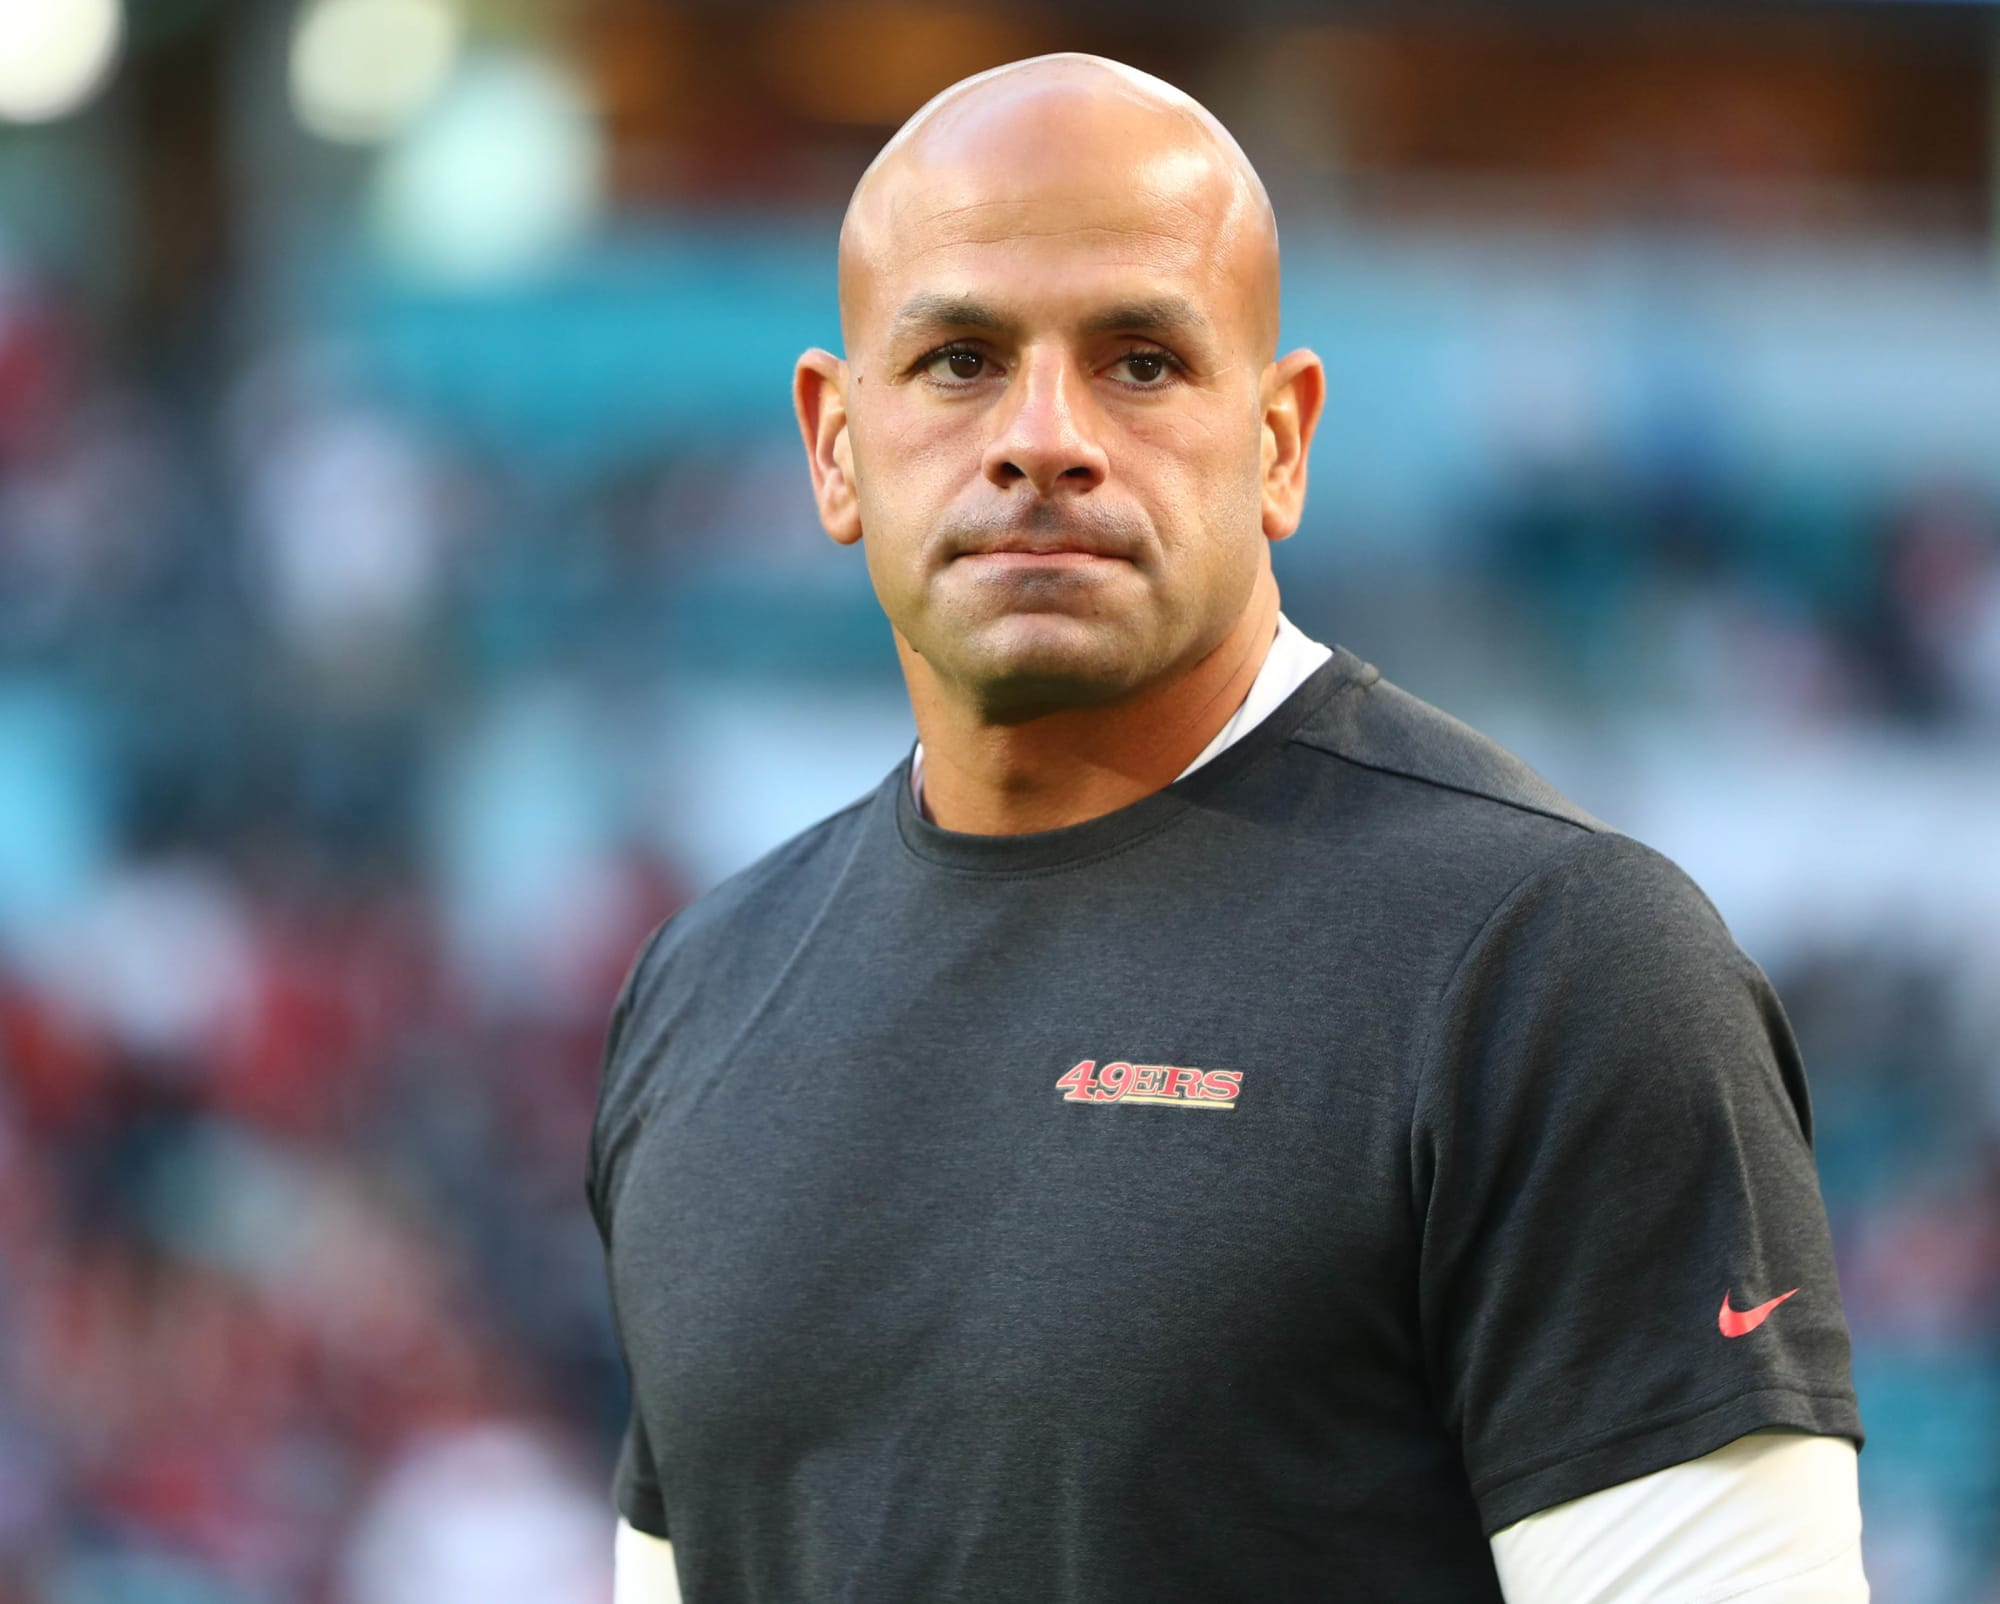 SF 49ers: 3 best replacements for Robert Saleh if he leaves in 2021